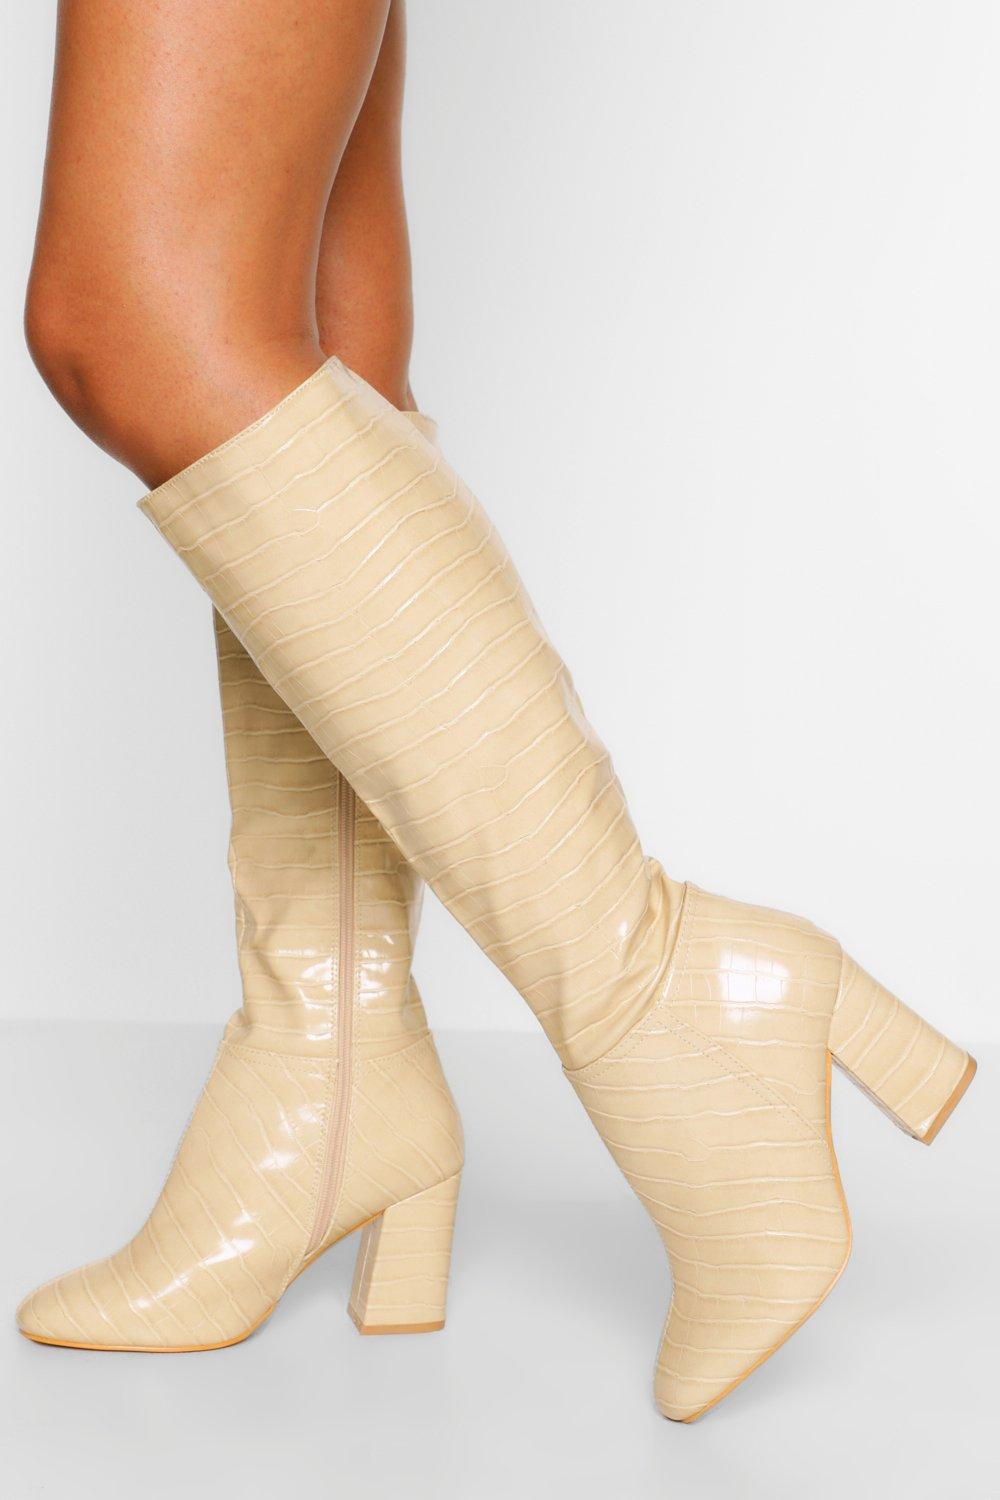 Vintage Boots- Buy Winter Retro Boots Womens Wide Fit Block Heel Knee Boot - White - 10 $42.00 AT vintagedancer.com